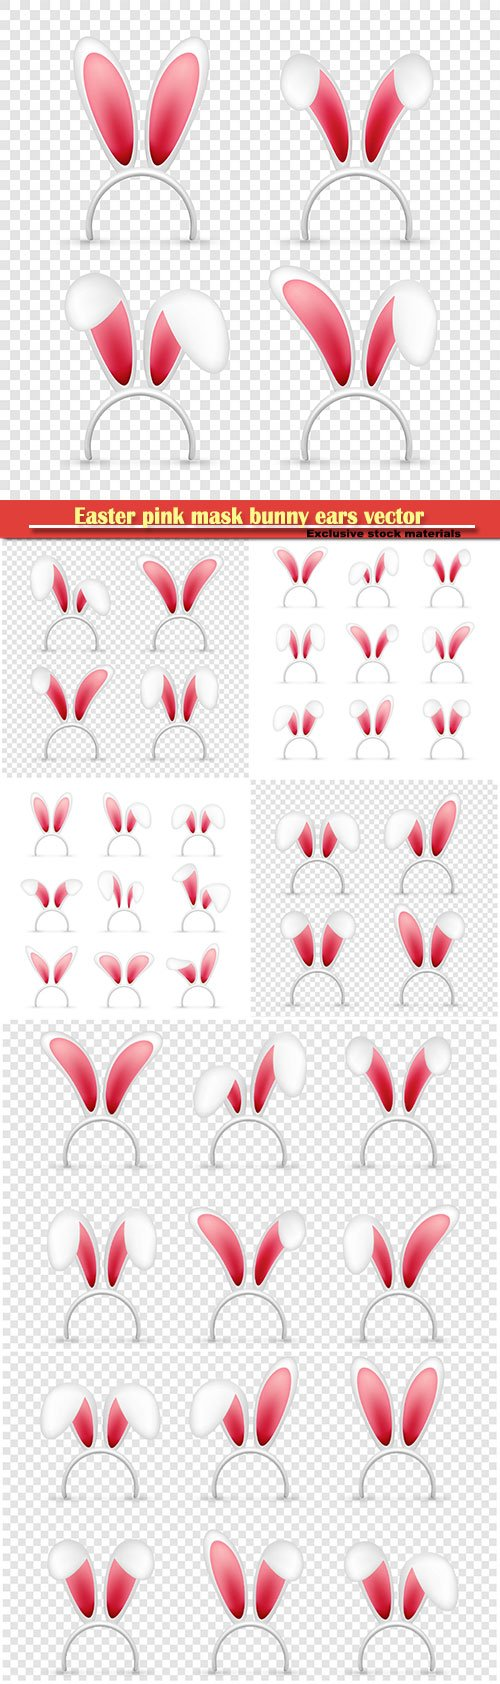 Easter pink mask bunny ears vector illustration